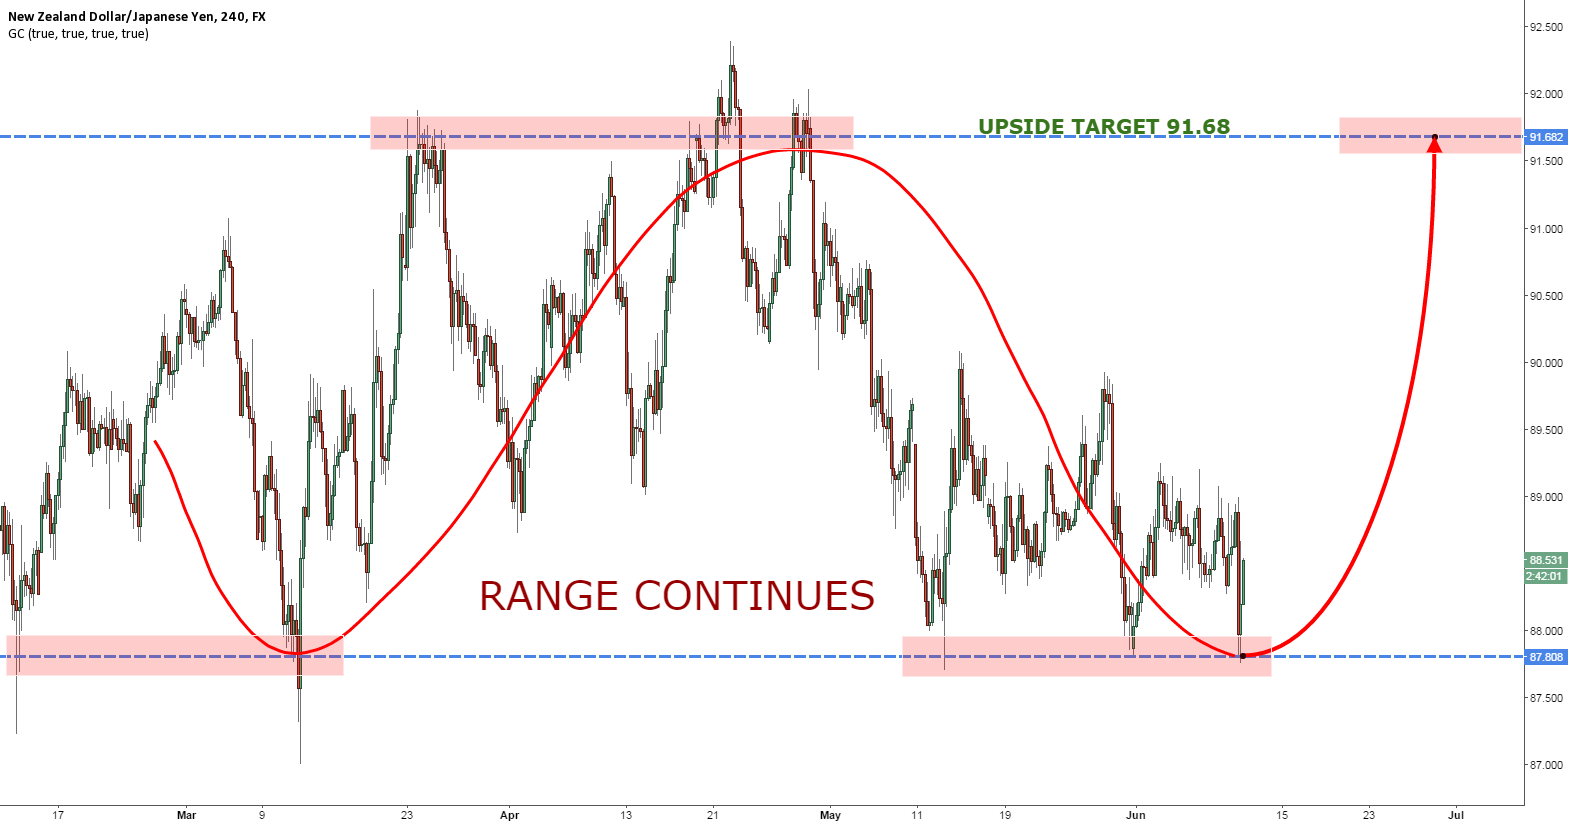 NZDJPY RANGE CONTINUES, NOW UP